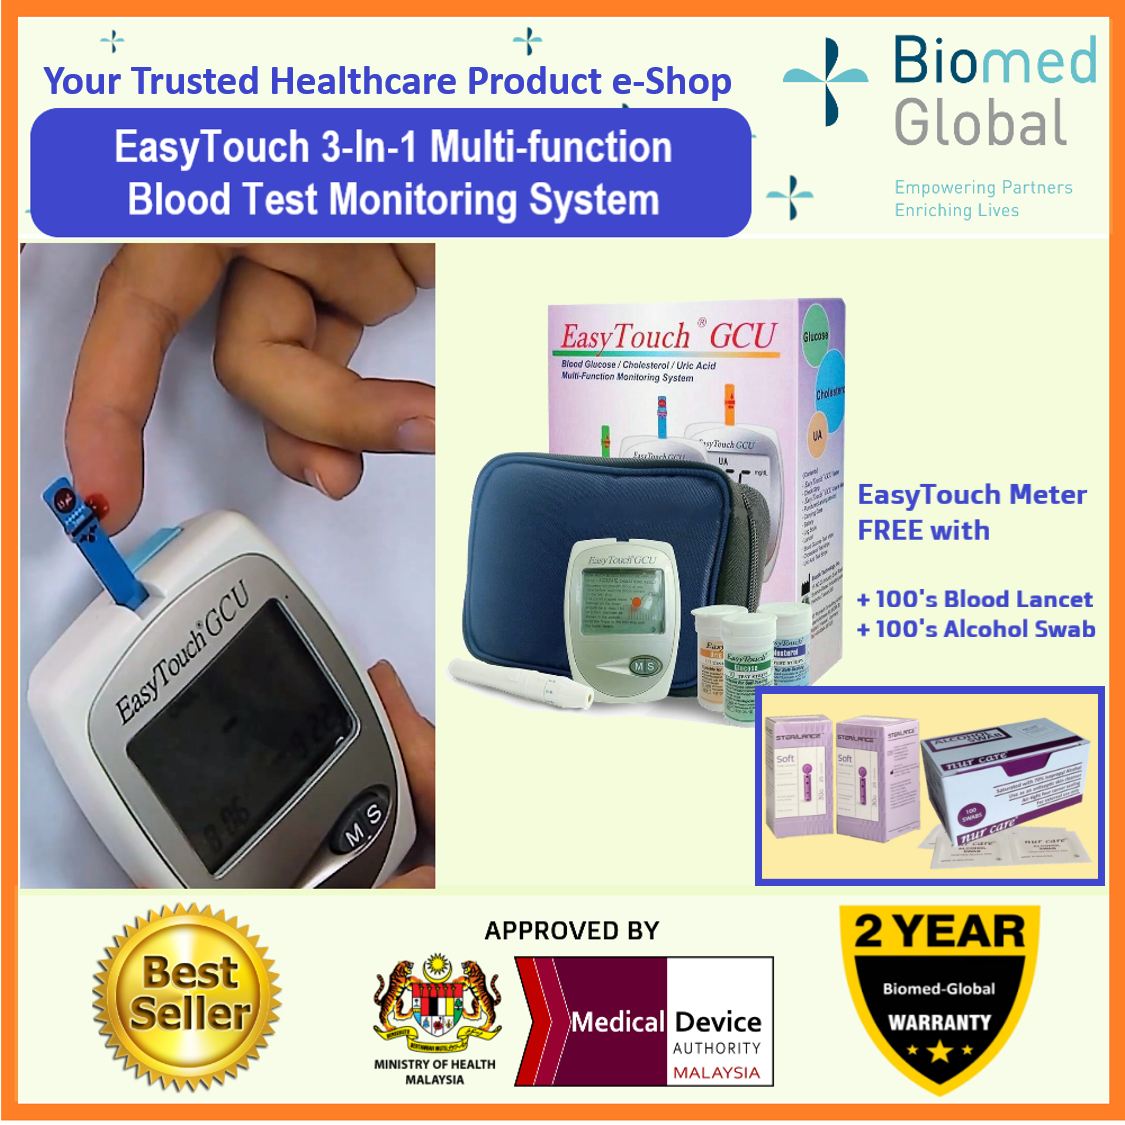 EasyTouch GCU 3-in-1 Blood Glucose, Cholesterol and Uric Acid Meter, FREE with 100's Blood Lancet & Alcohol Swab (BUNDLE PACK)